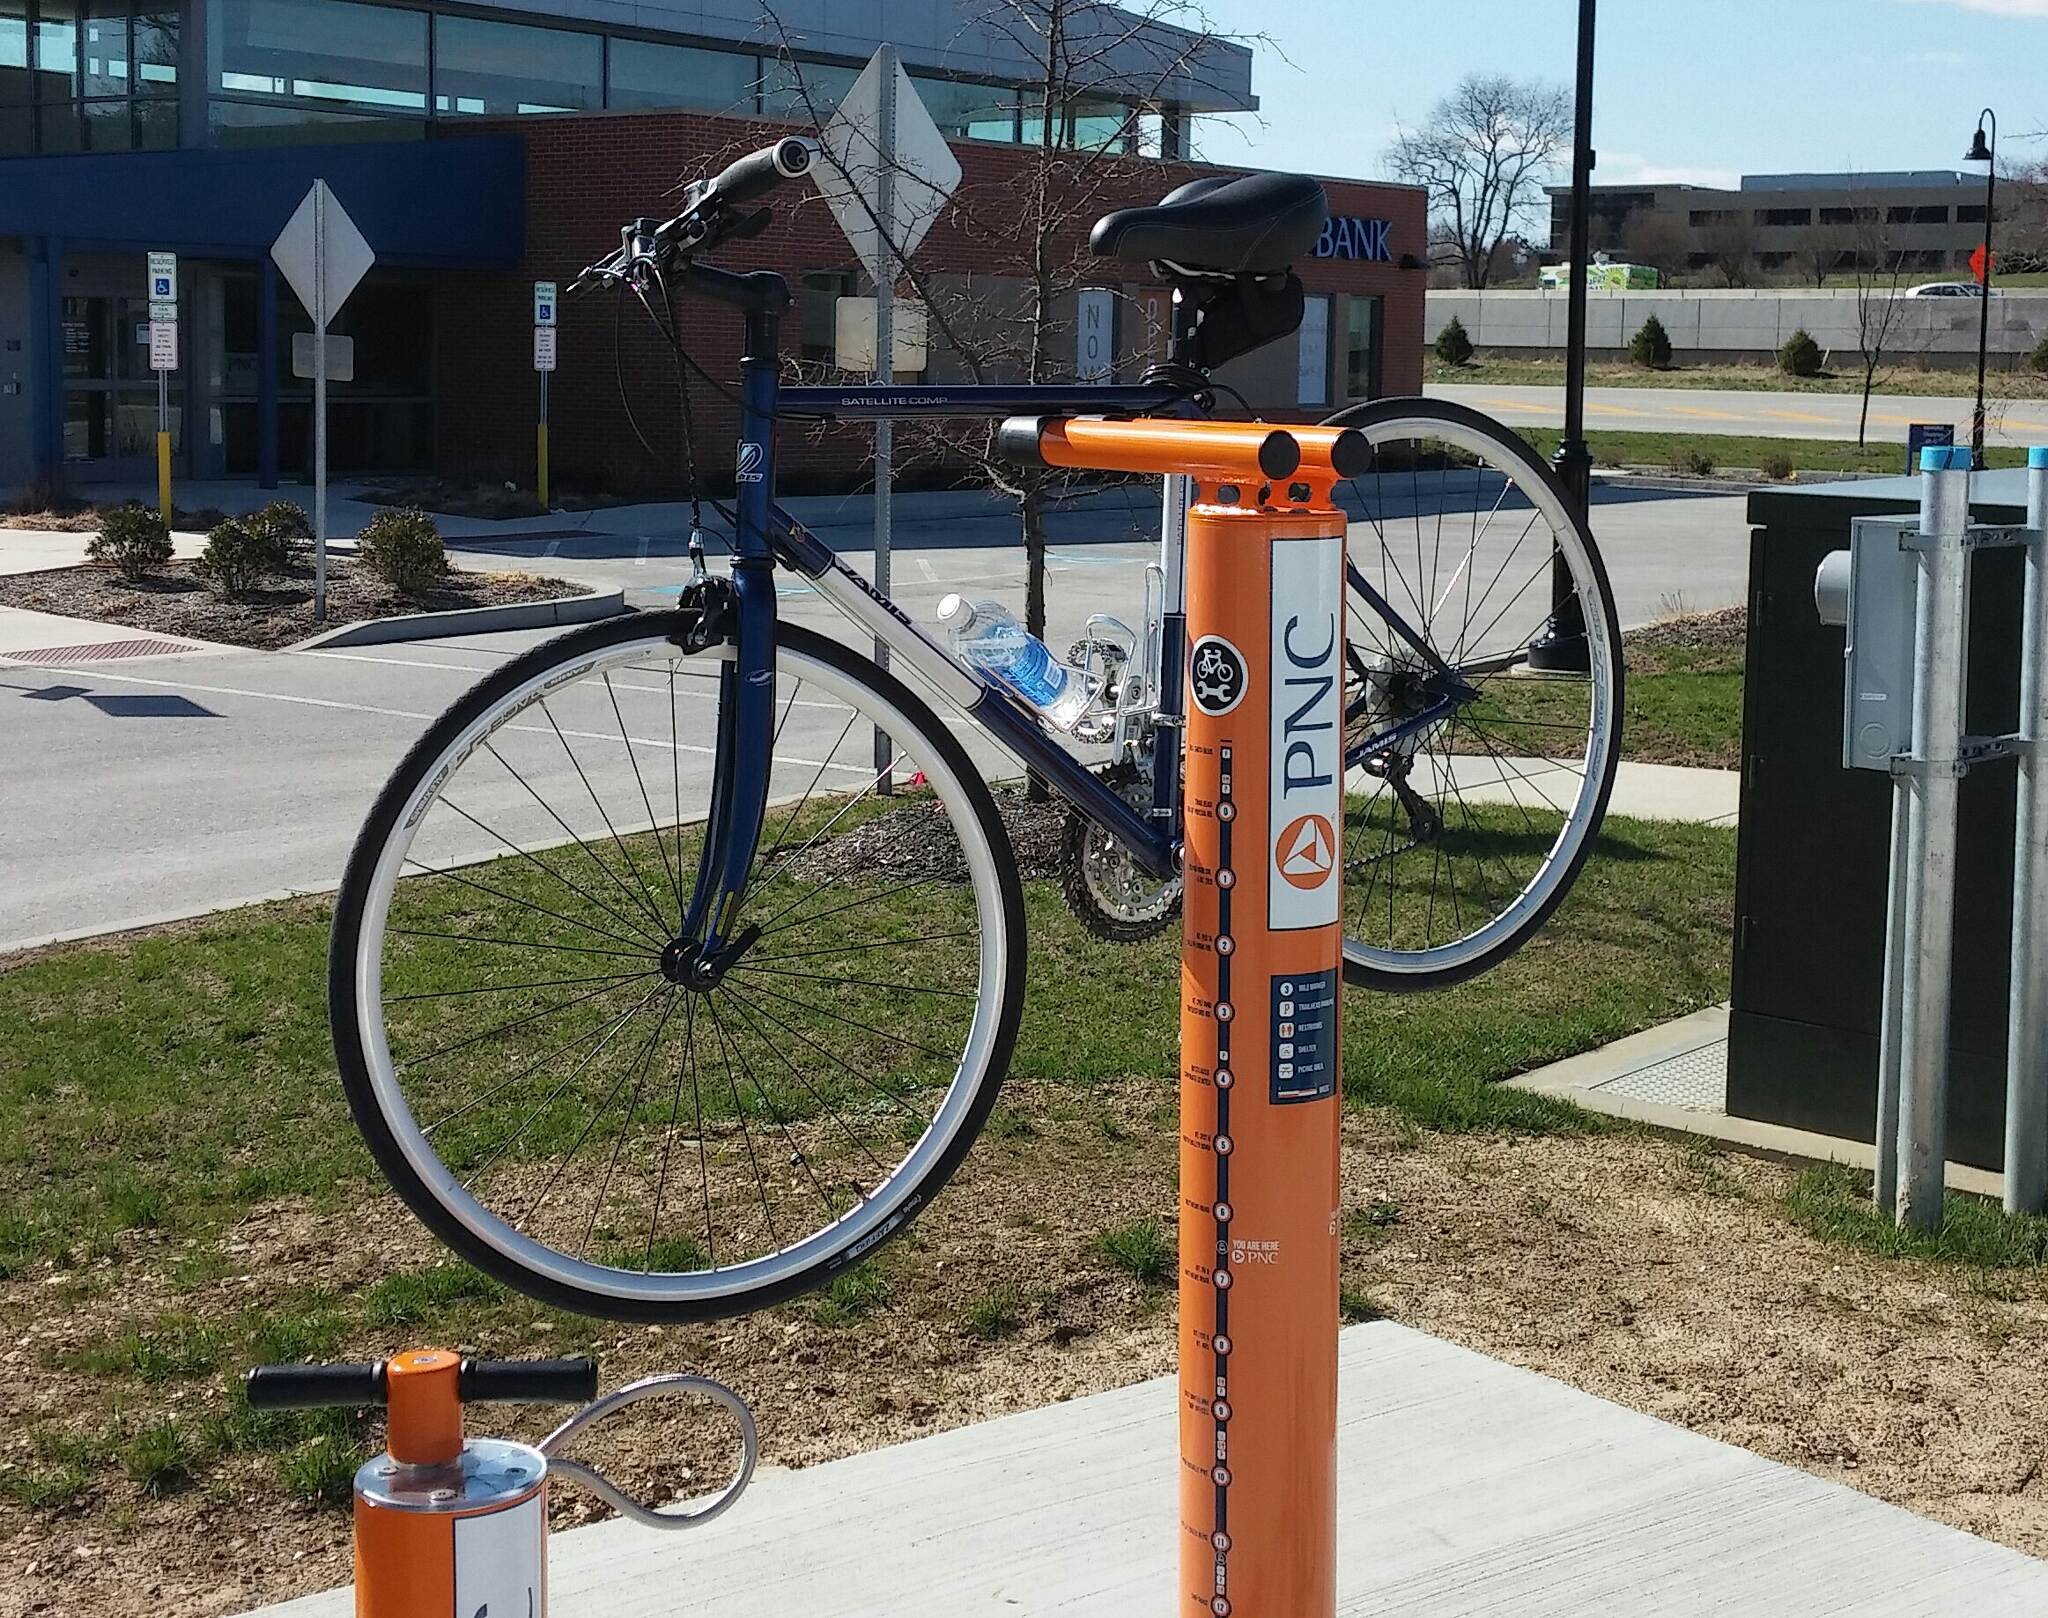 Chester Valley Trail Thanks PNC A repair station along the trail @ a PNC bank.